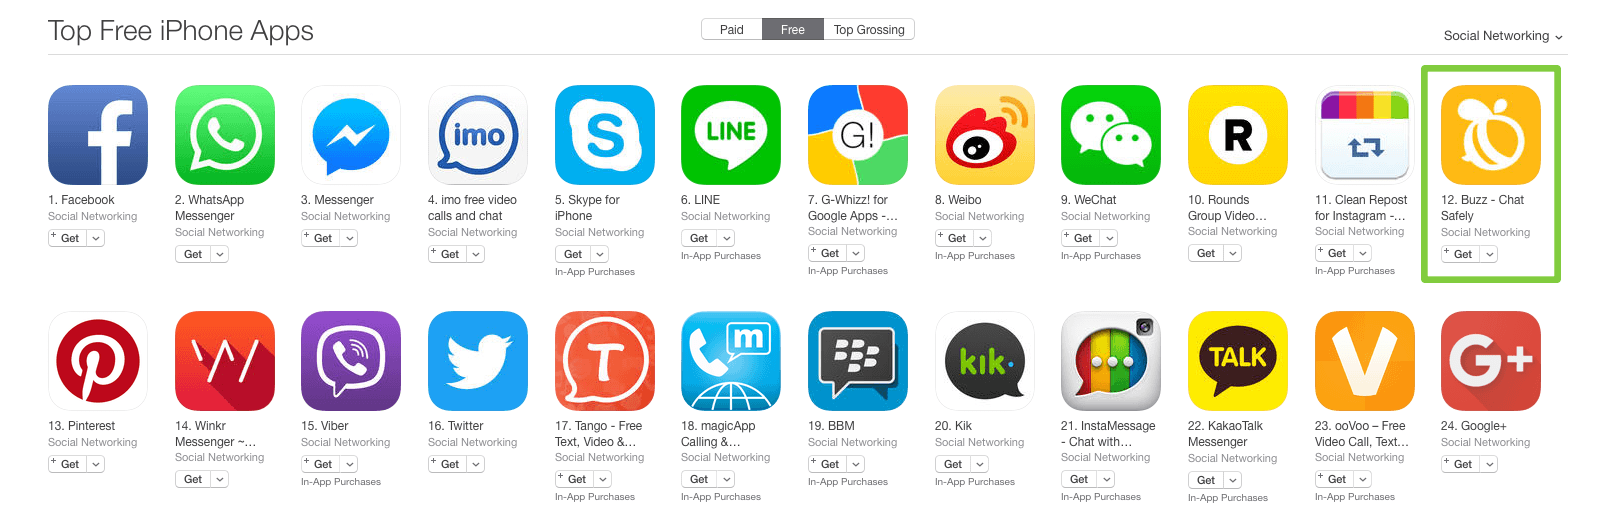 Buzz as the #12 Top Free Social Networking App